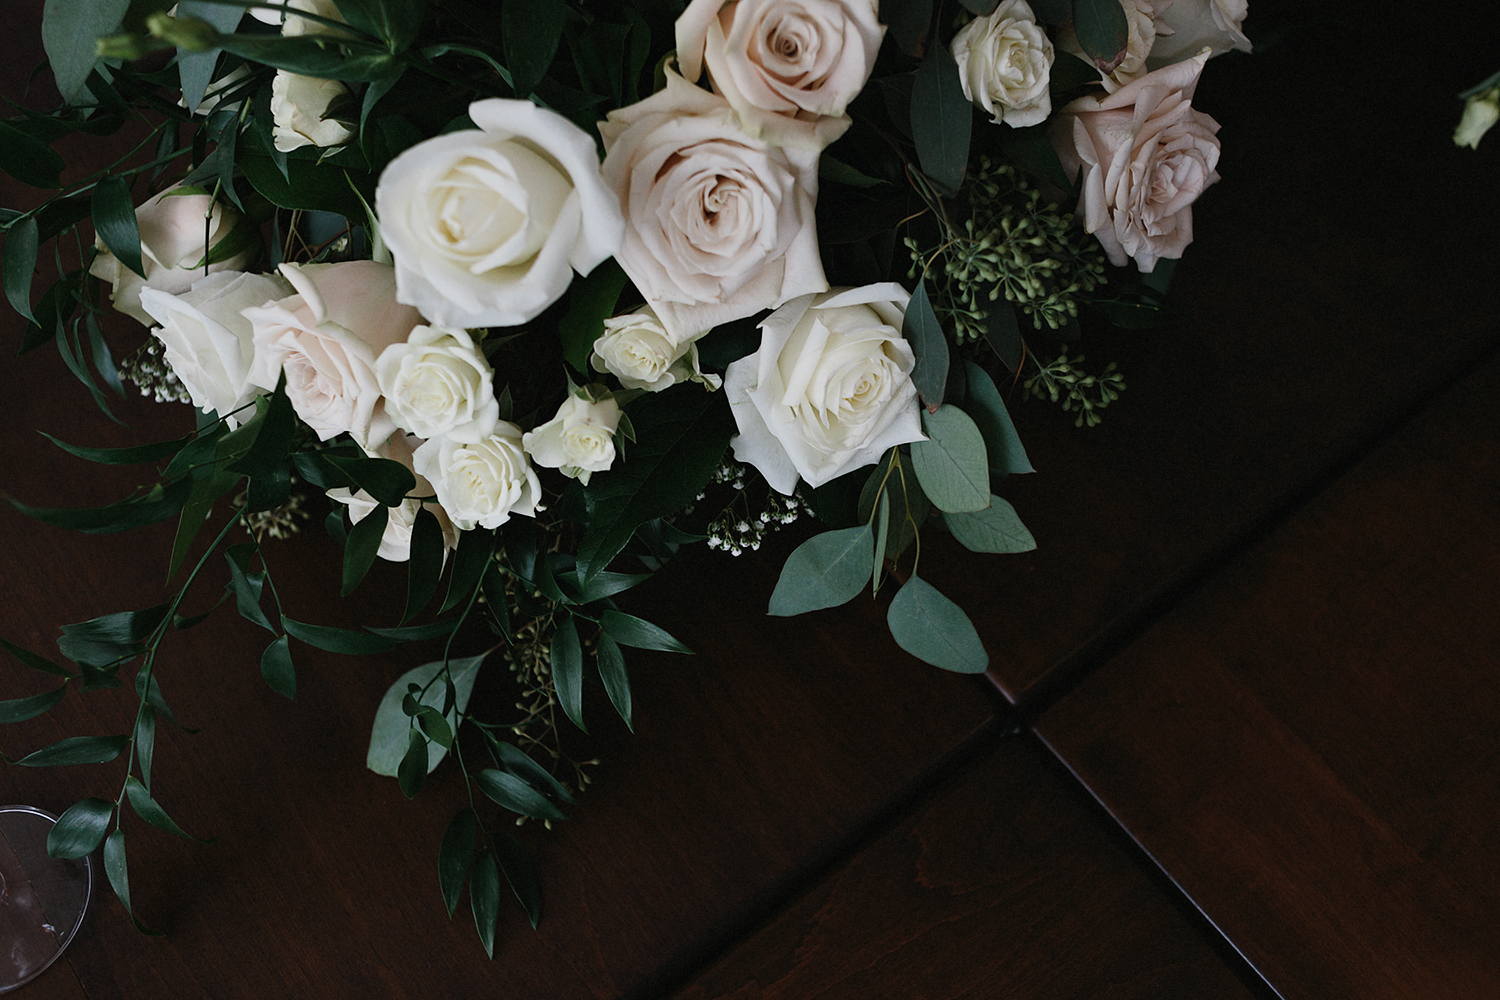 toronto-restaurant-elopement-small-wedding-intimate-lunch-tablescape-inspiration.jpg